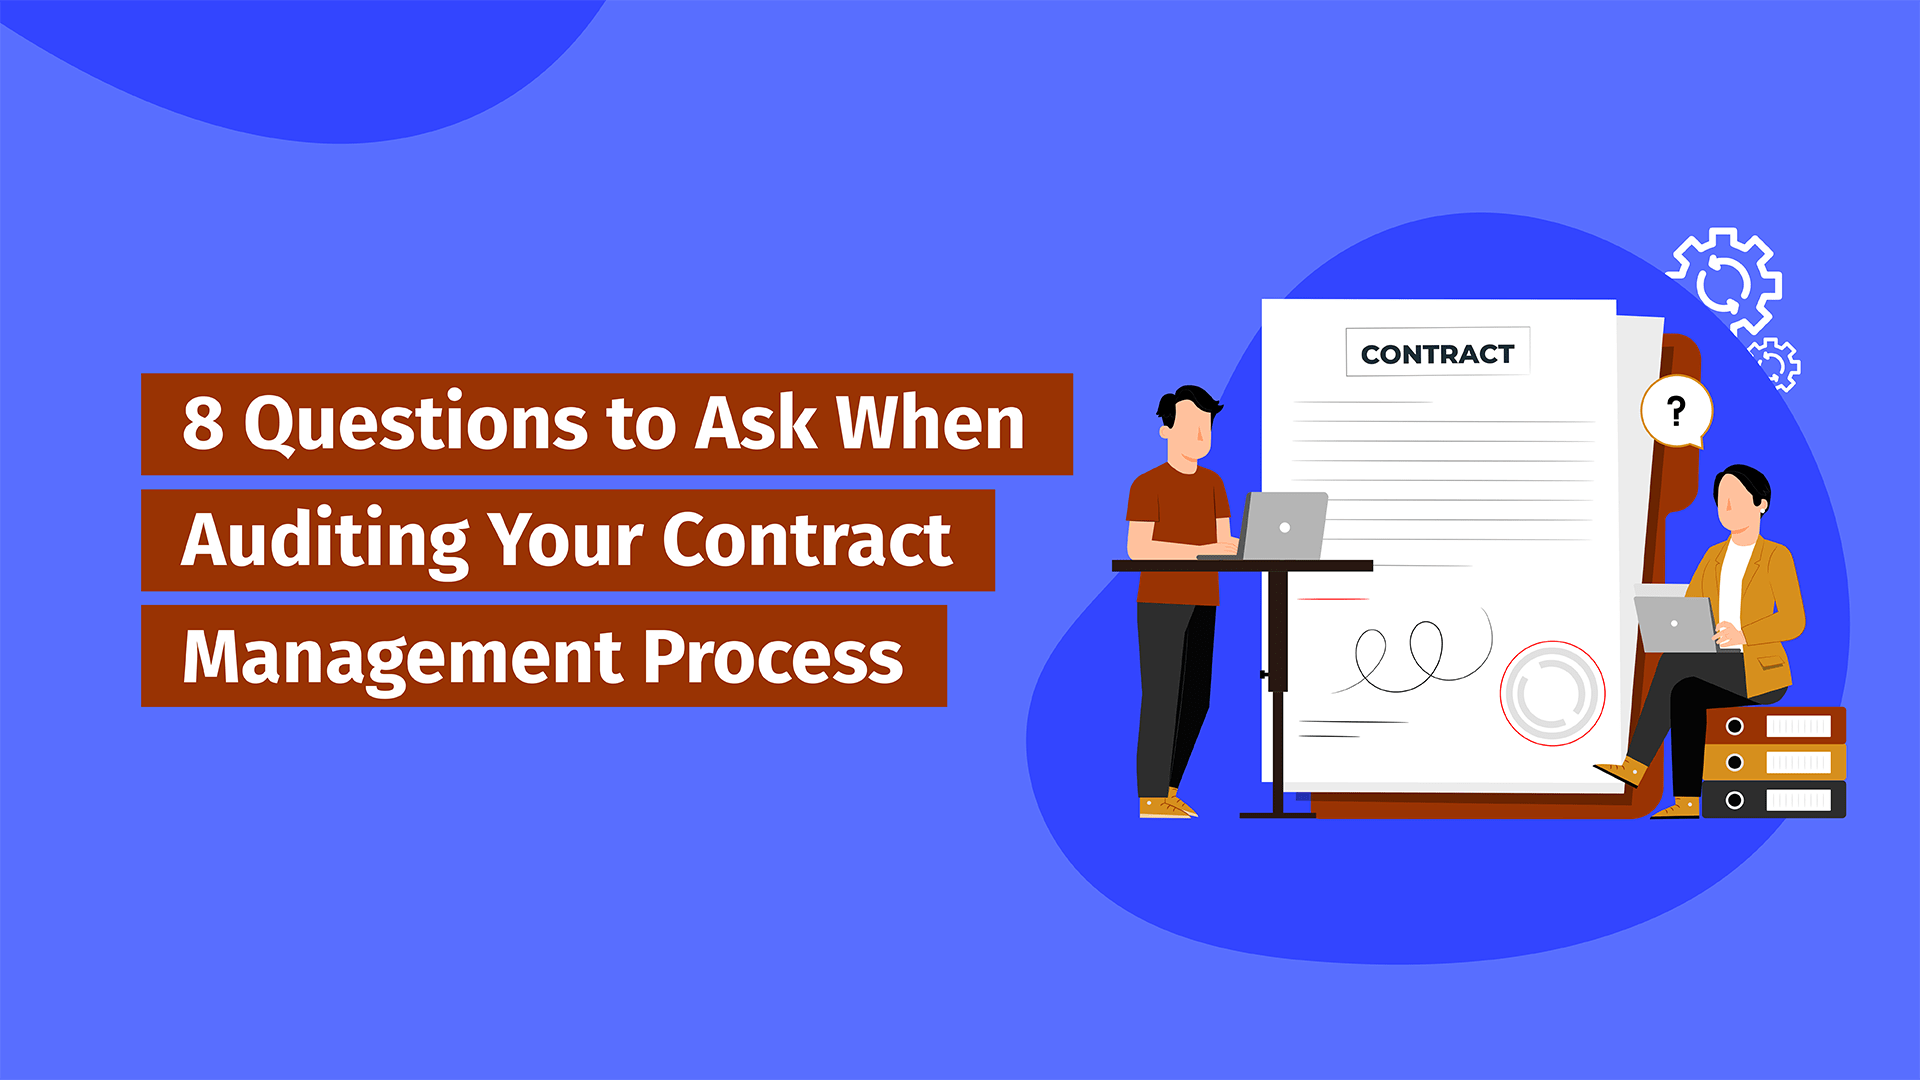 8 Questions to Ask When Auditing Your Contract Management Process